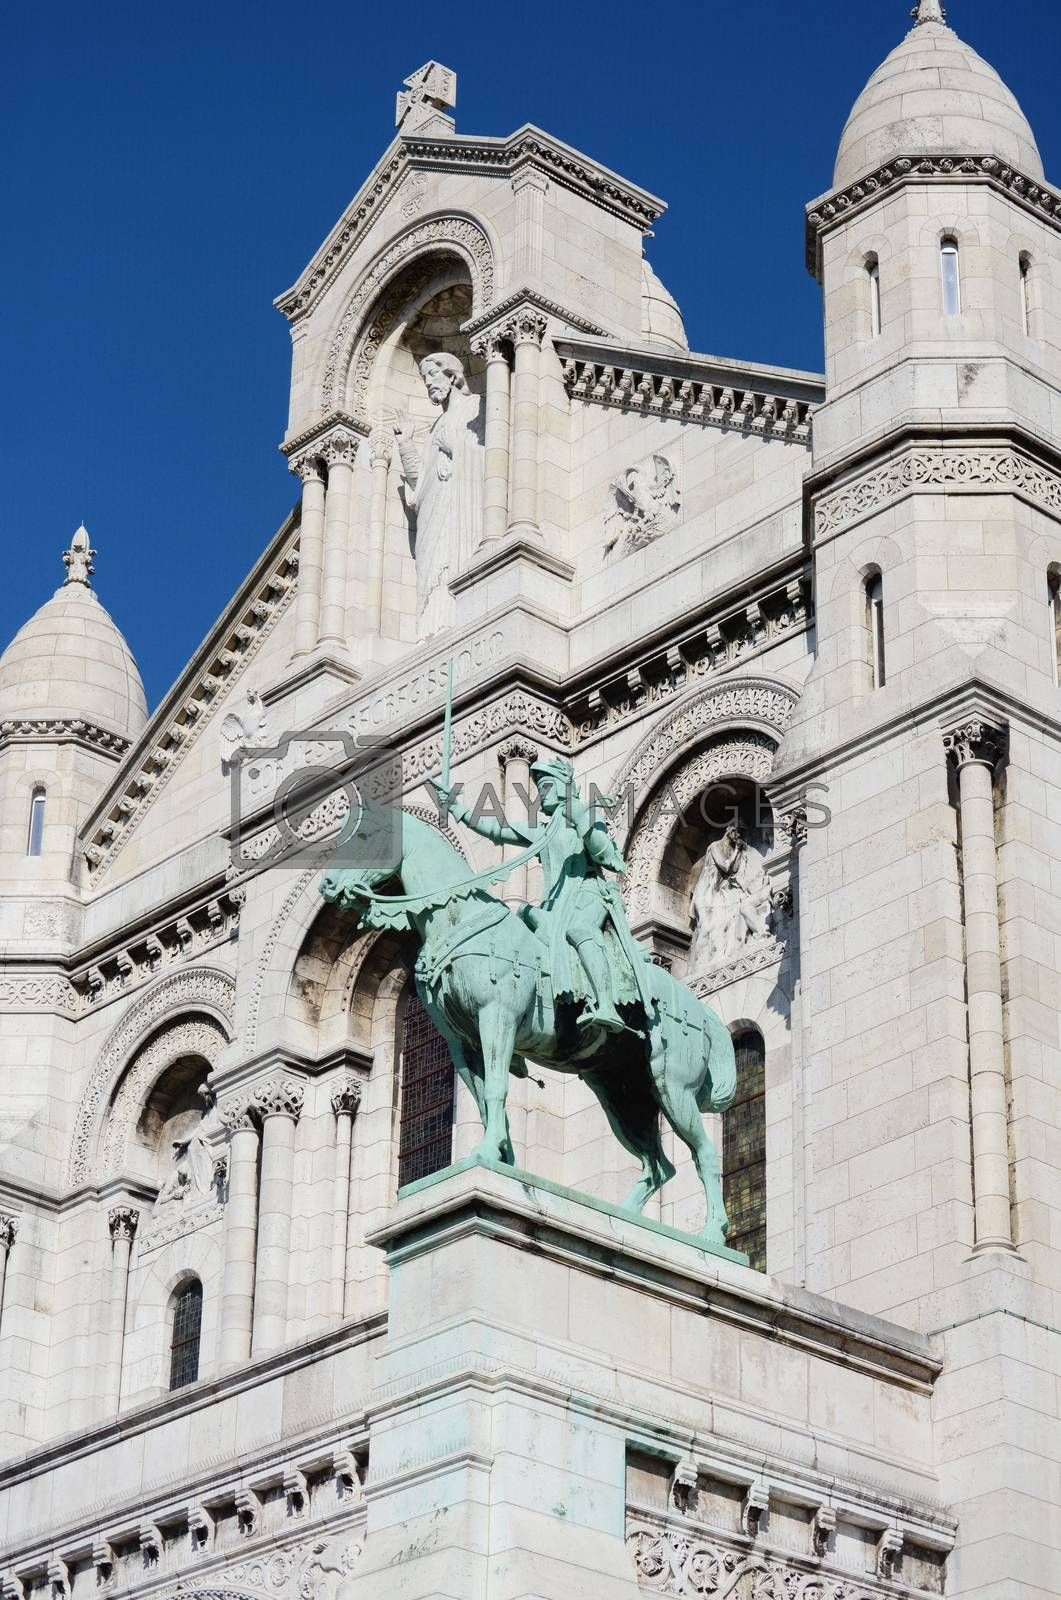 Joan of Arc bronze equestrian statue on the facade of the Sacre Coeur basilica, with the limestone architecture of the church beyond